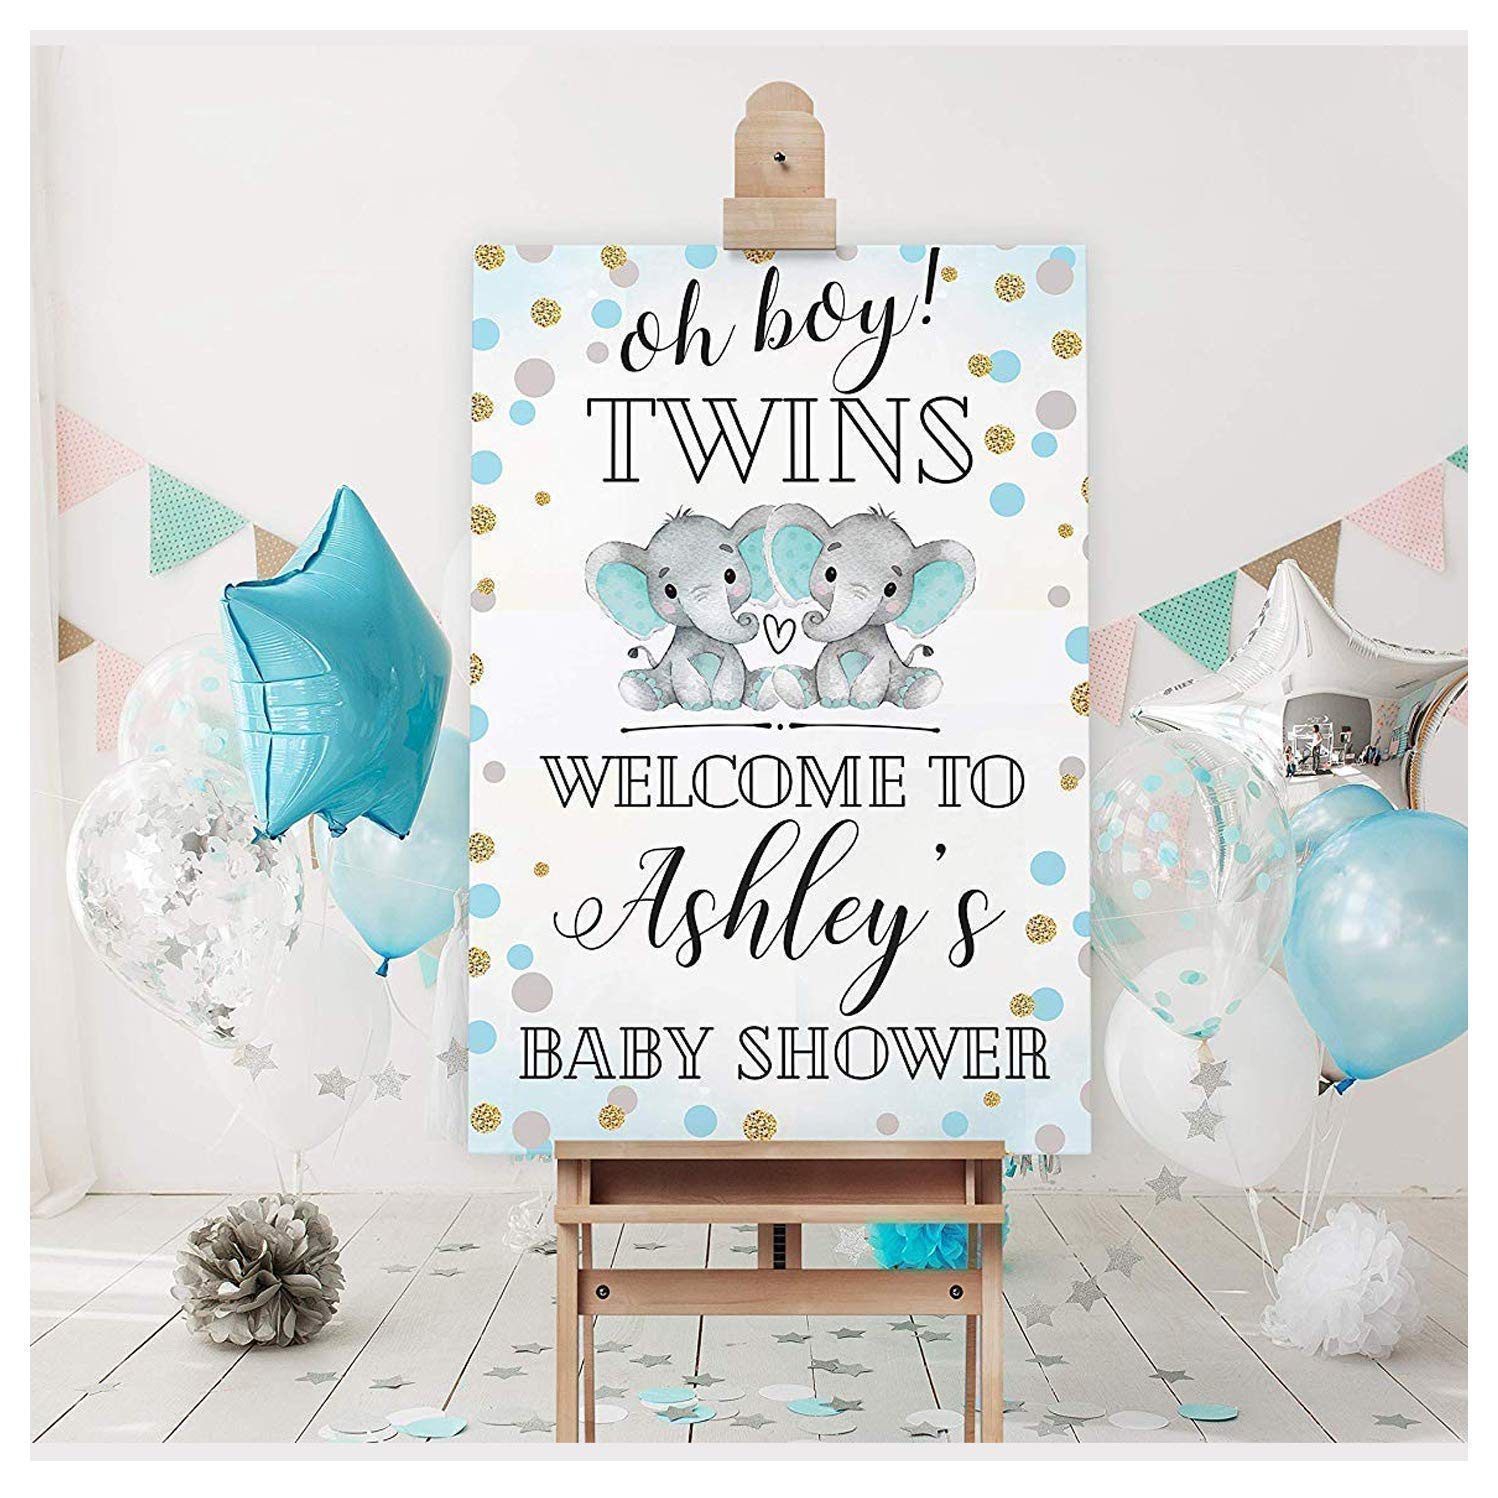 Amazon Com Twin Baby Shower Welcome Sign Twin Boys Baby Boys Shower Welcome Sign Baby Shower Reception Sign Baby Shower Decor Baby Shower Welcome Poster Welcome Sign Print Size 24x36 18x24 Handmade